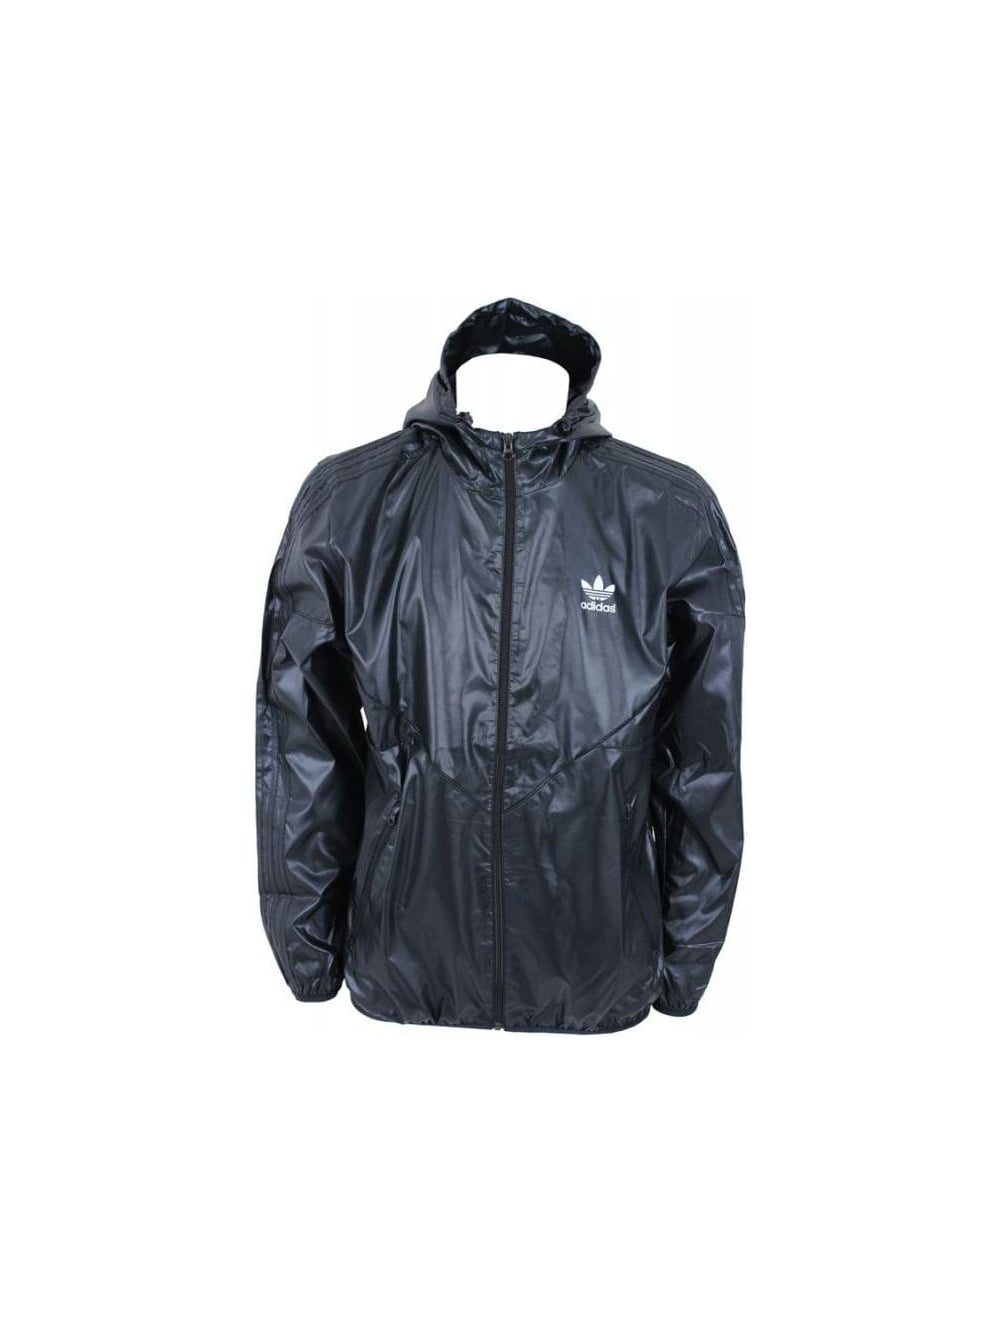 65958e40a Adidas Originals Colorado Windbreaker in Black/White - Northern Threads